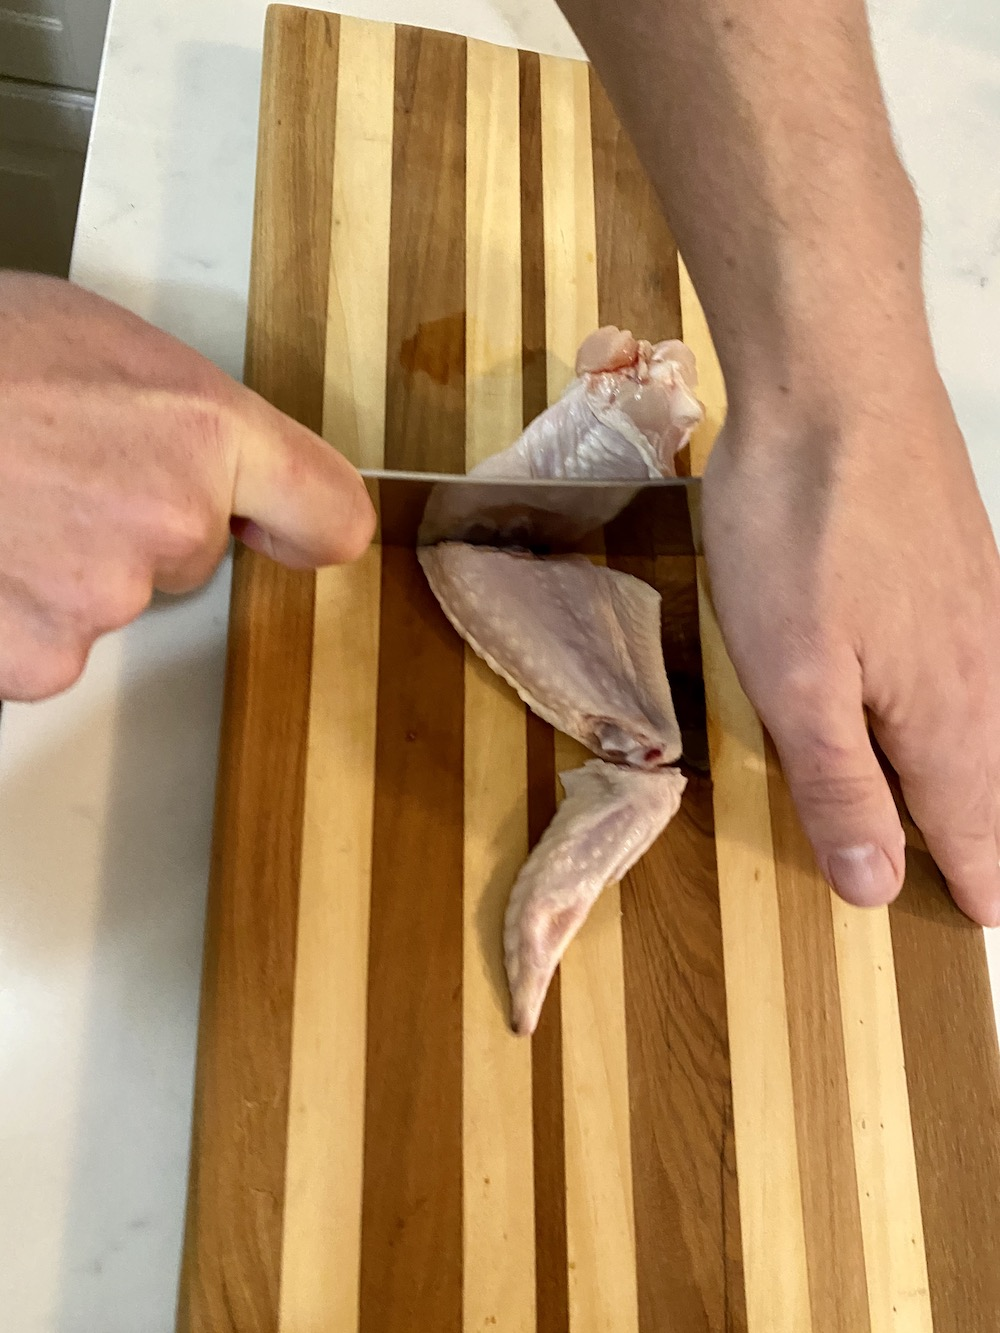 Cutting a chicken wing.